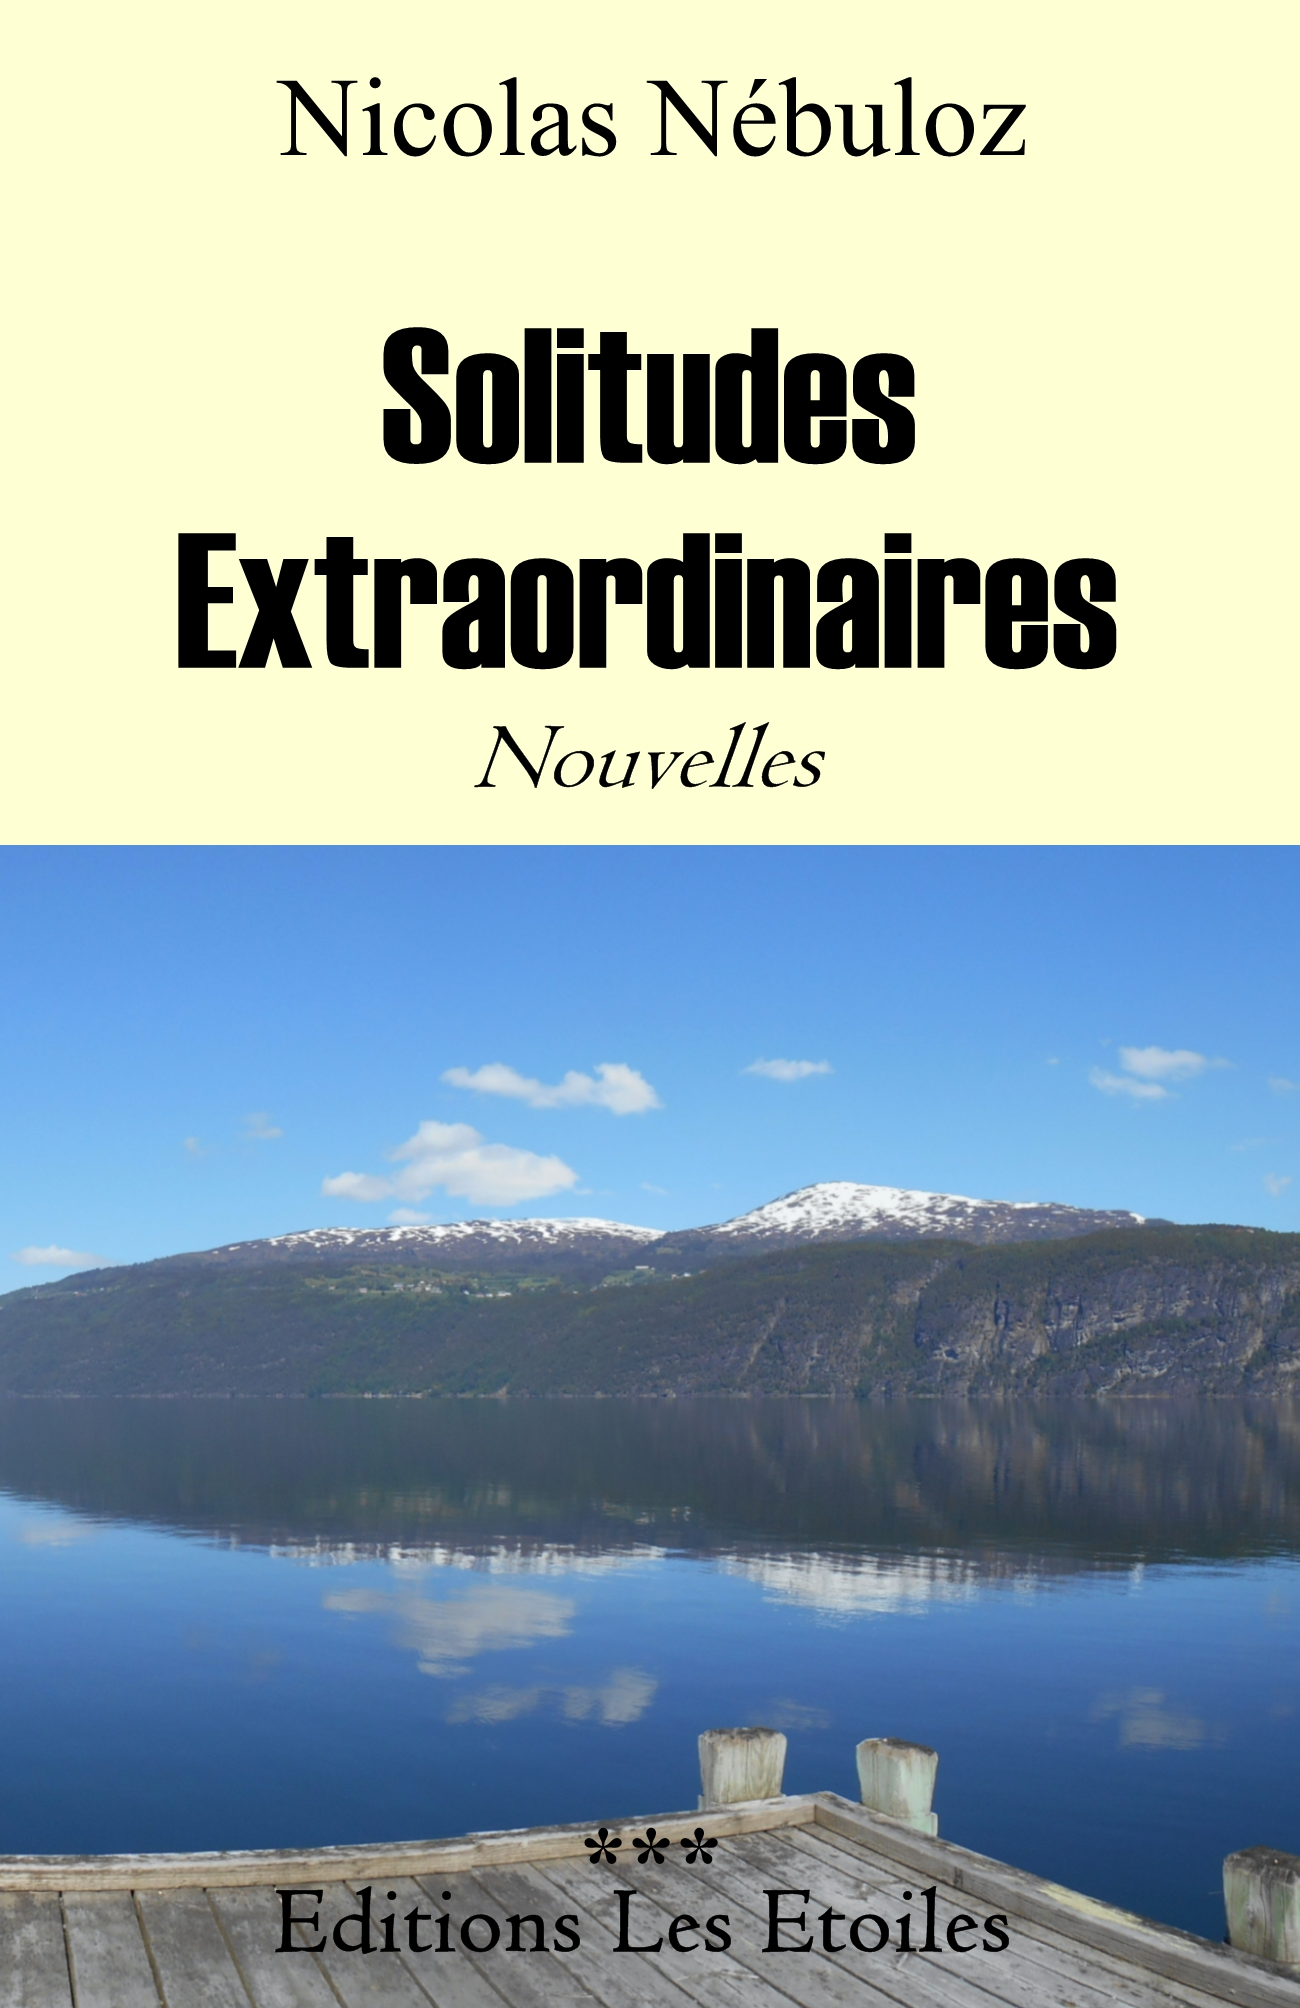 Solitudes Extraordinaires